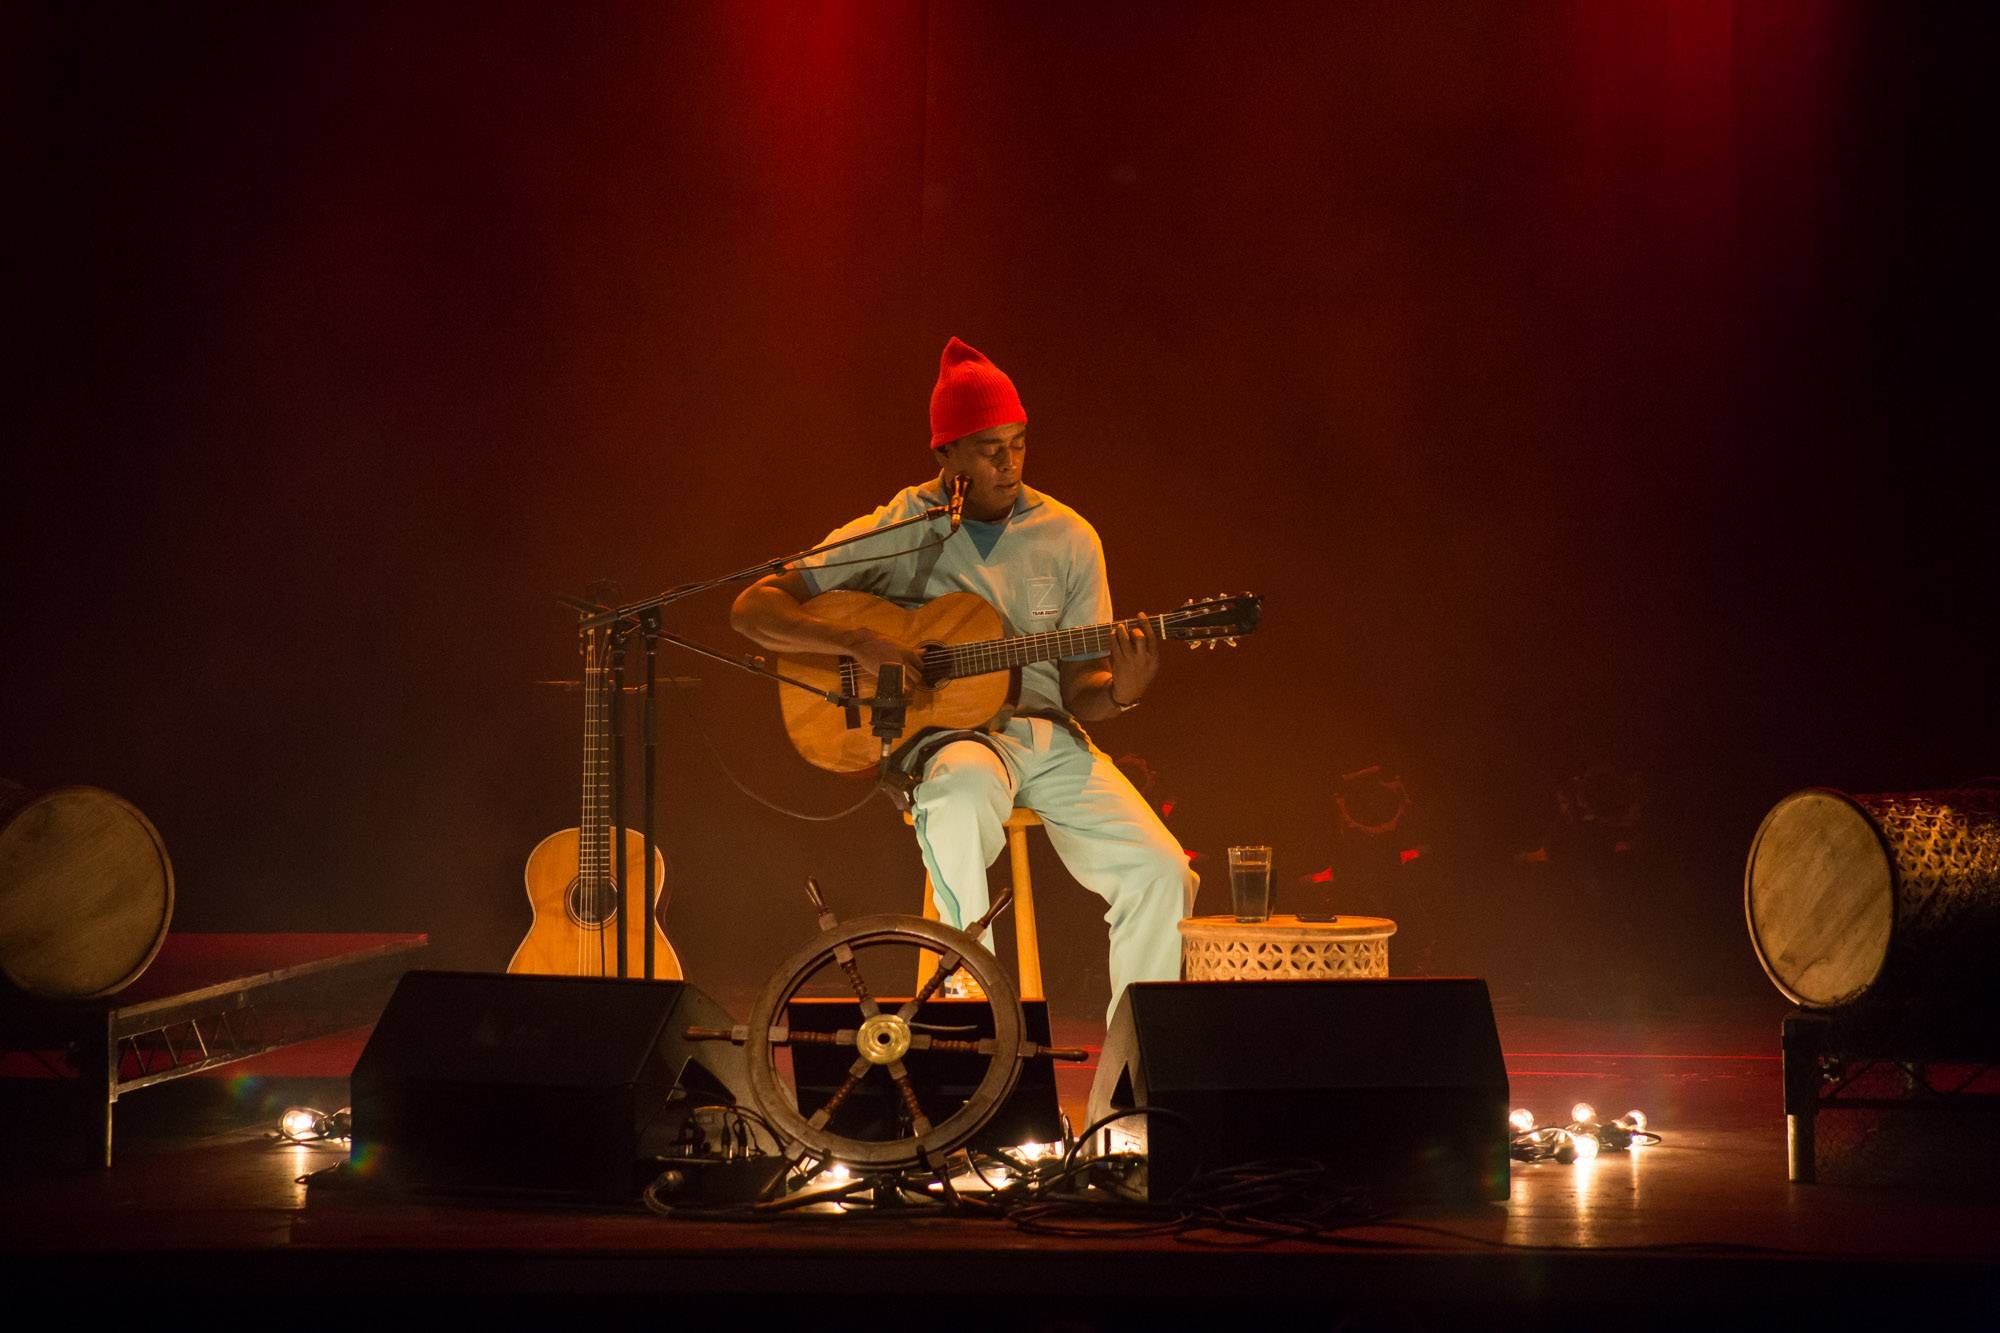 Seu Jorge at the Vogue Theatre, Vancouver, Nov. 20 2016. Kirk Chantraine photo.